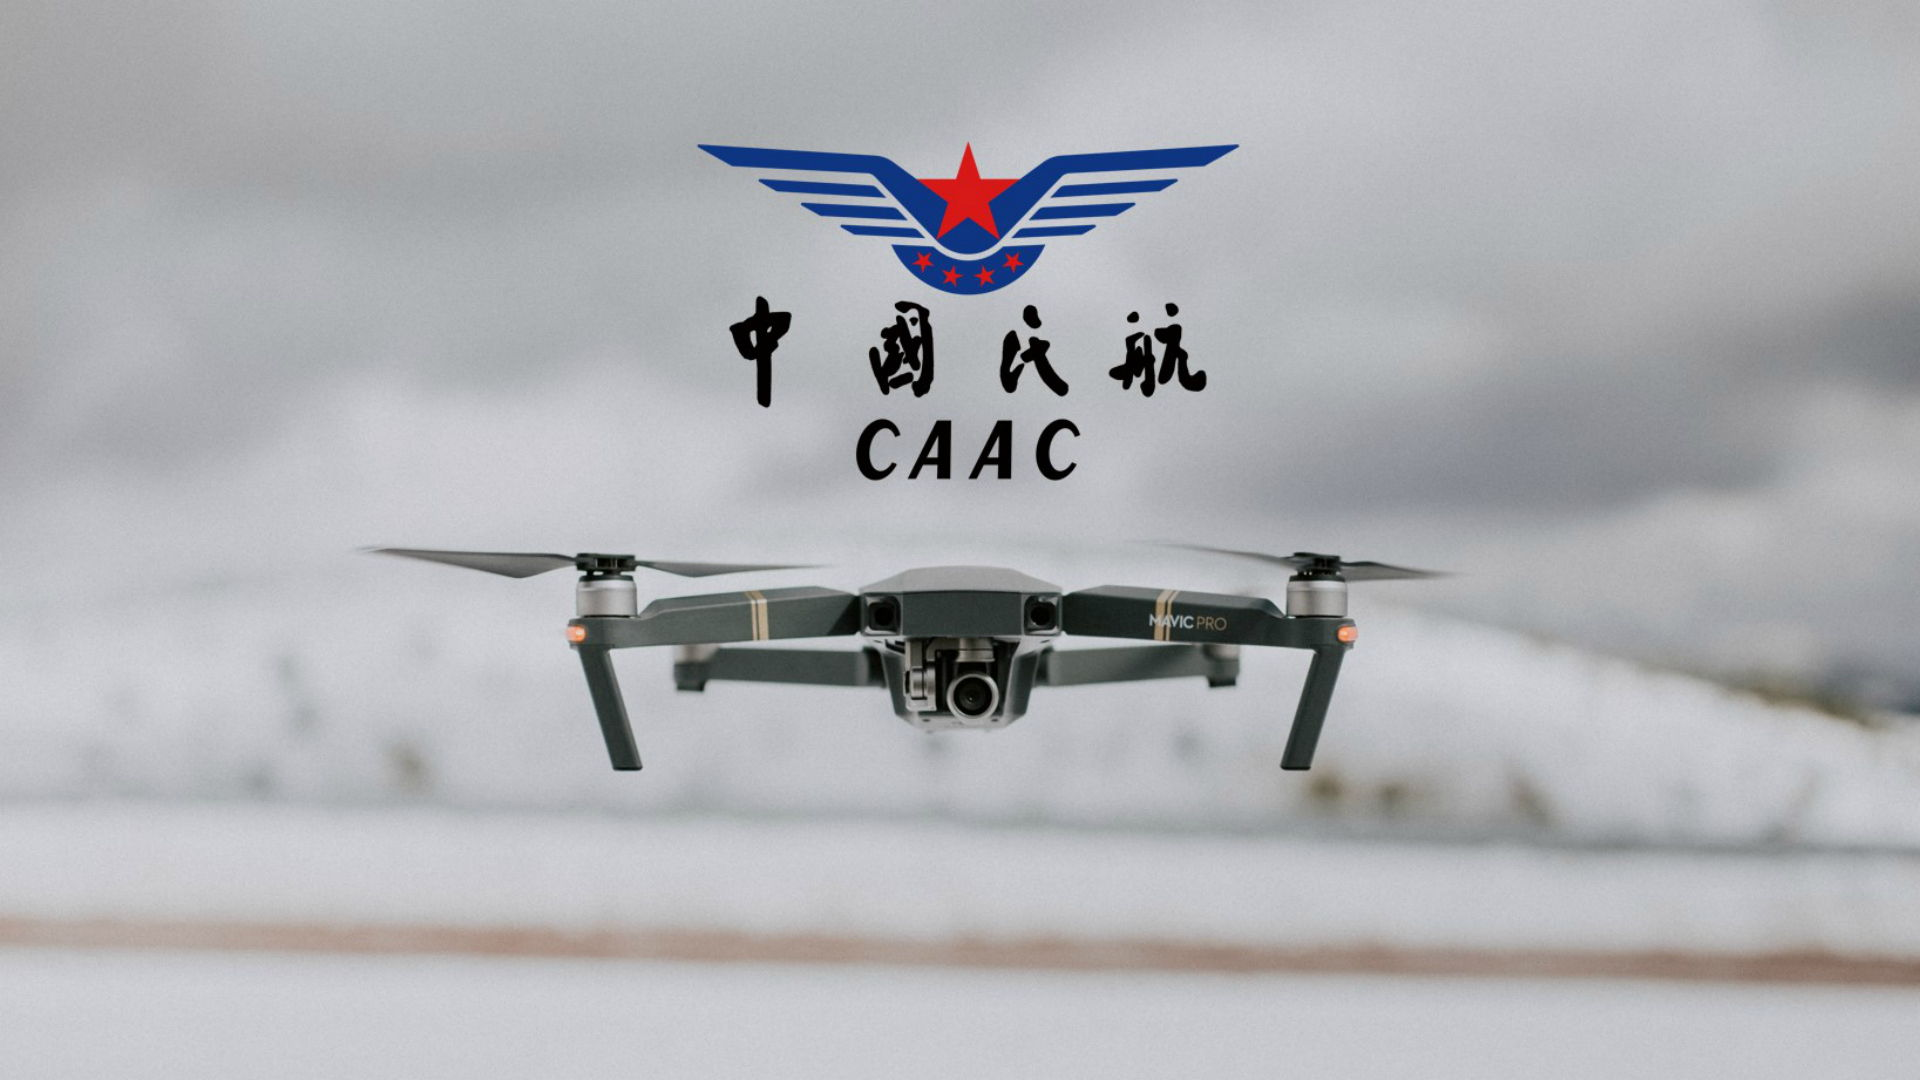 Chinese Drone Pilots have to register with government CAAC